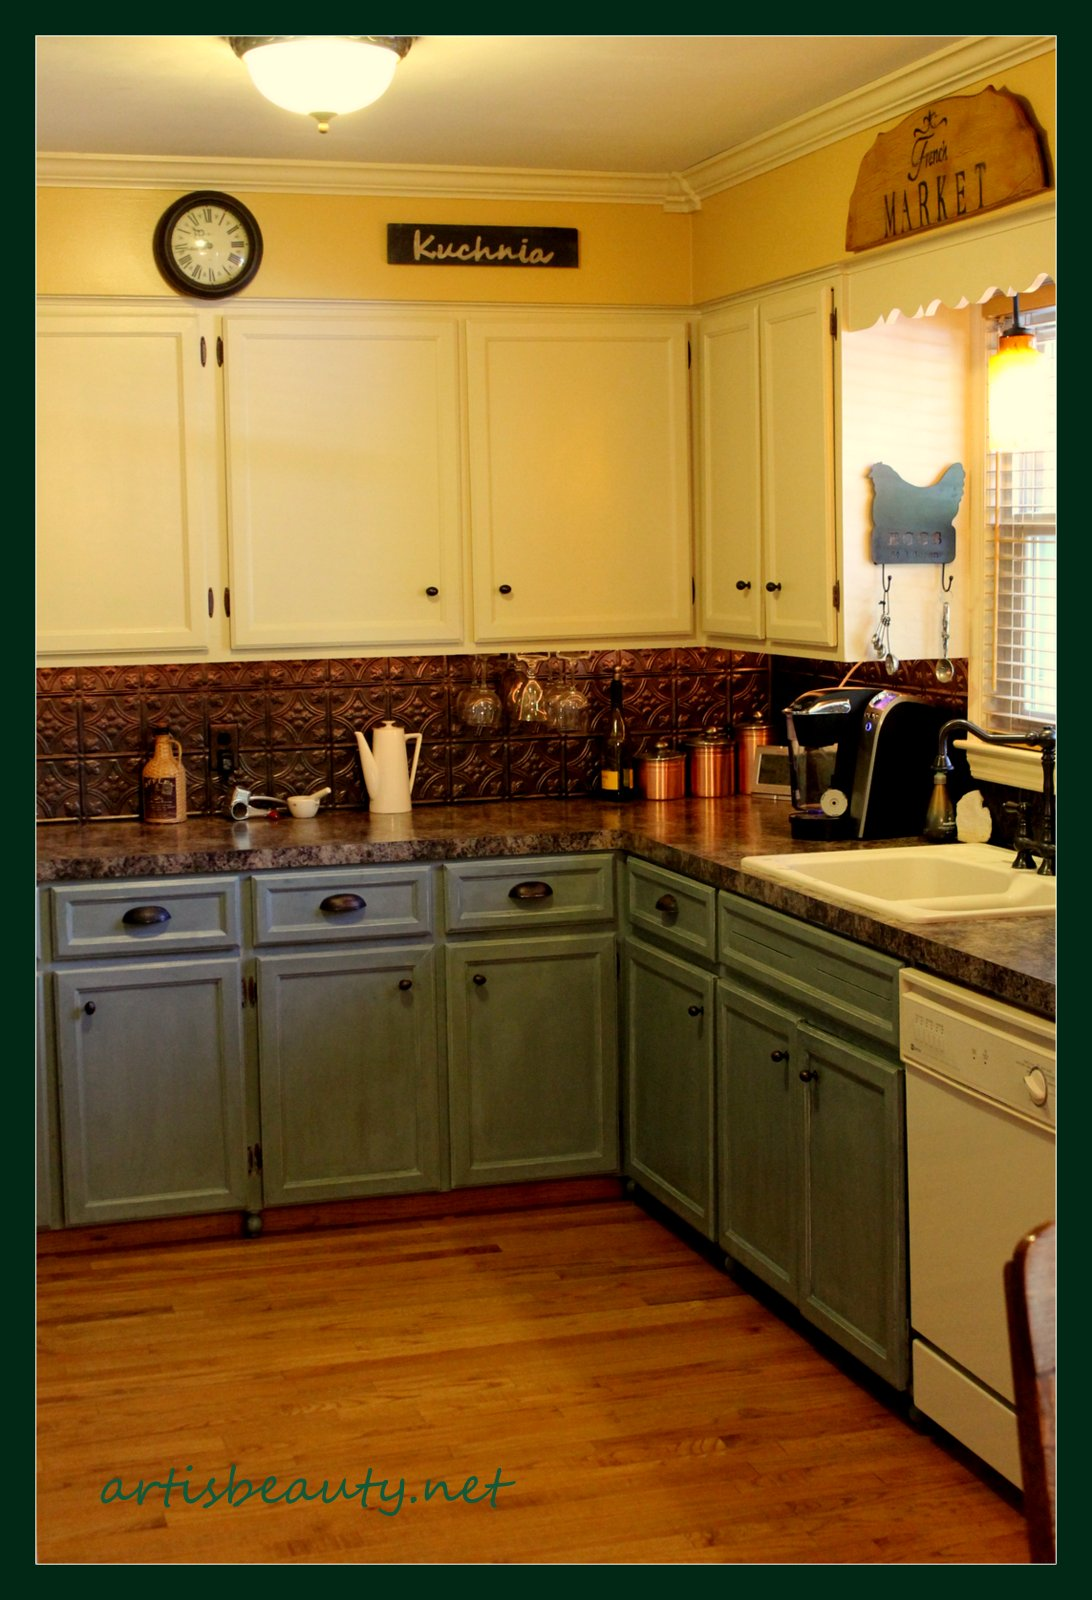 Art is beauty kitchen cupboard and kitchen reveal for Cece caldwell kitchen cabinets